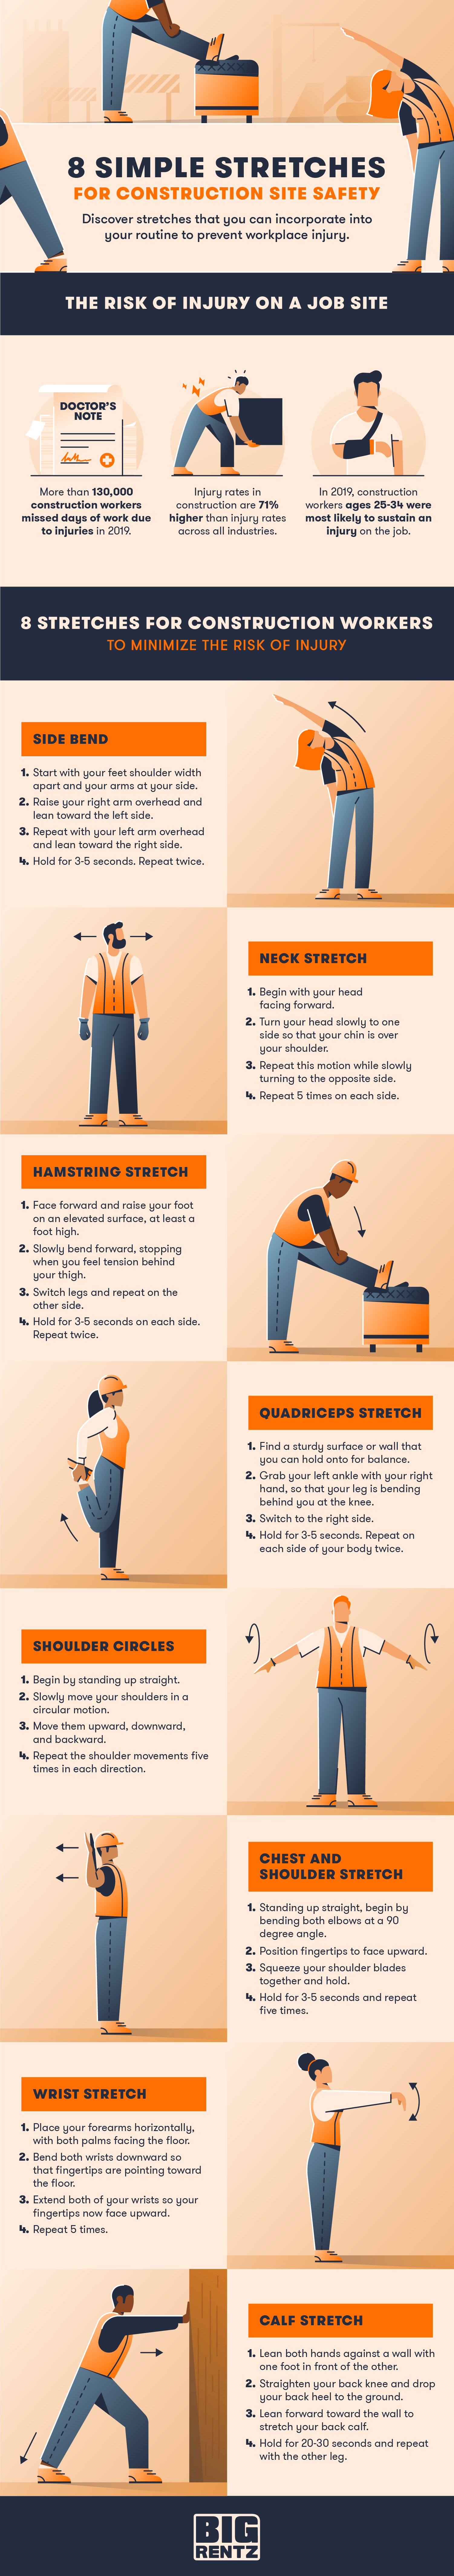 Stretches-for-Construction-Workers-Infographic